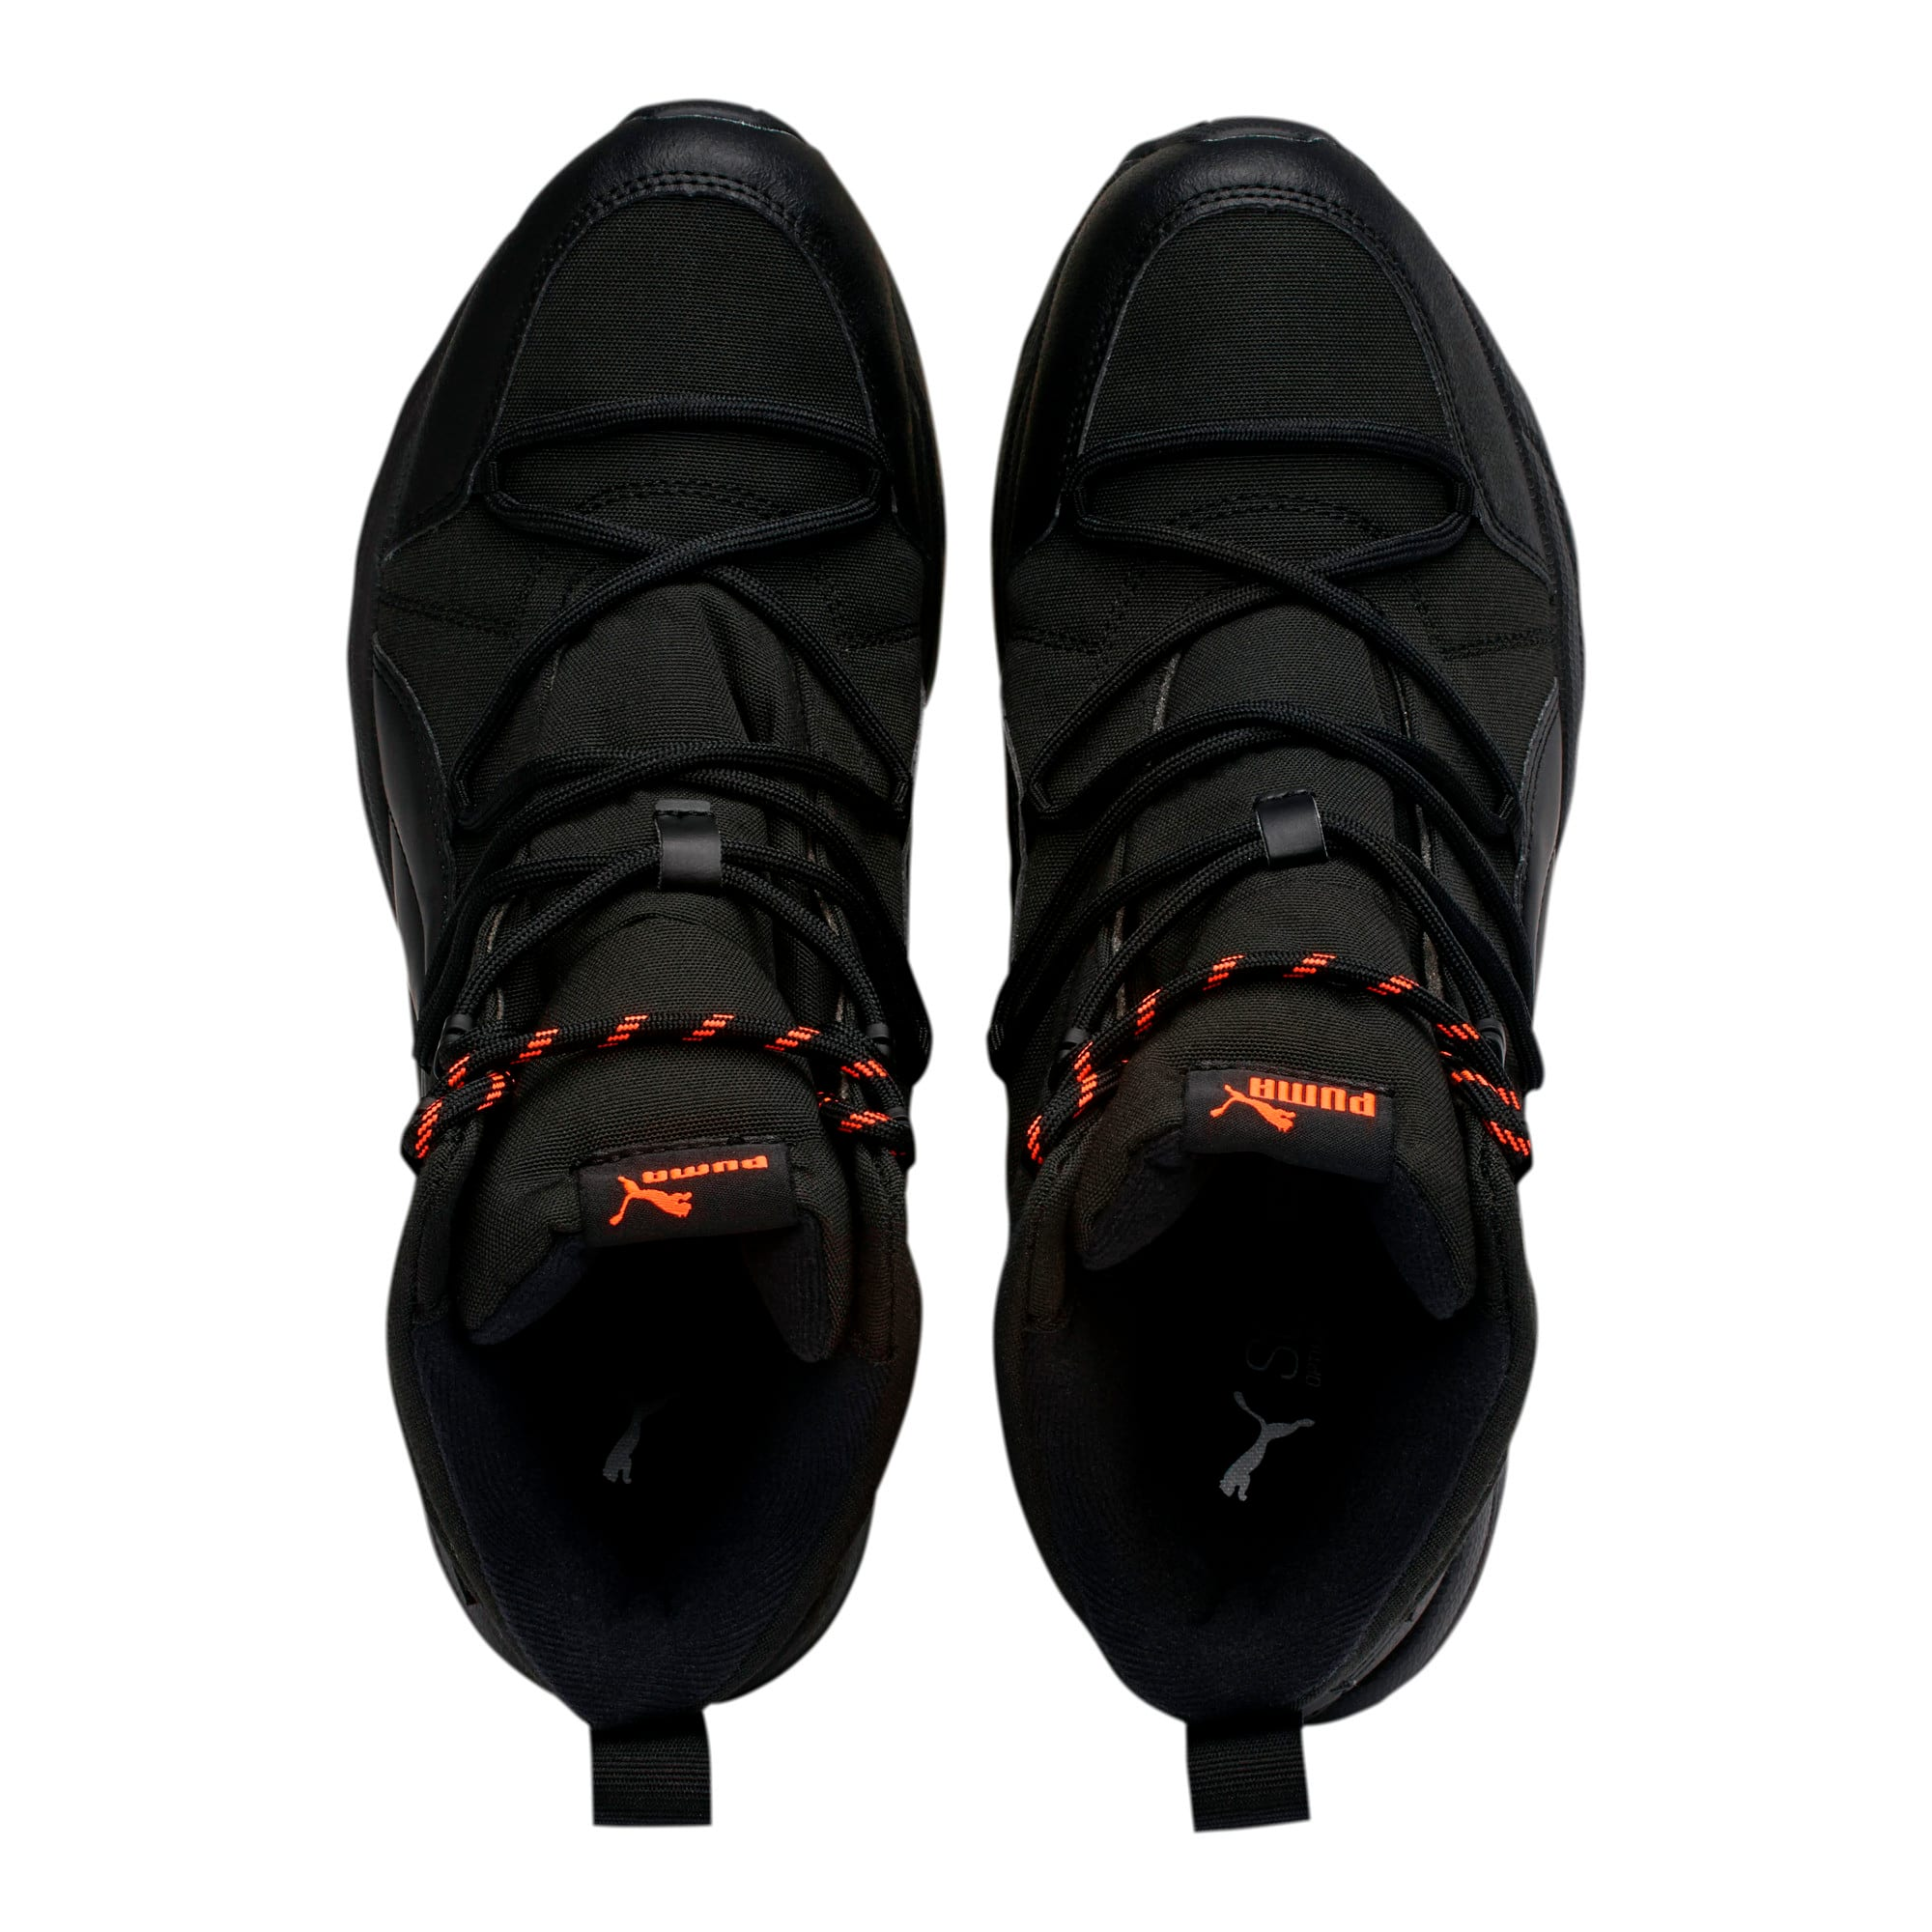 Thumbnail 6 of Axis Trail Winter Boots, Black-Nrgy Red-Whisper White, medium